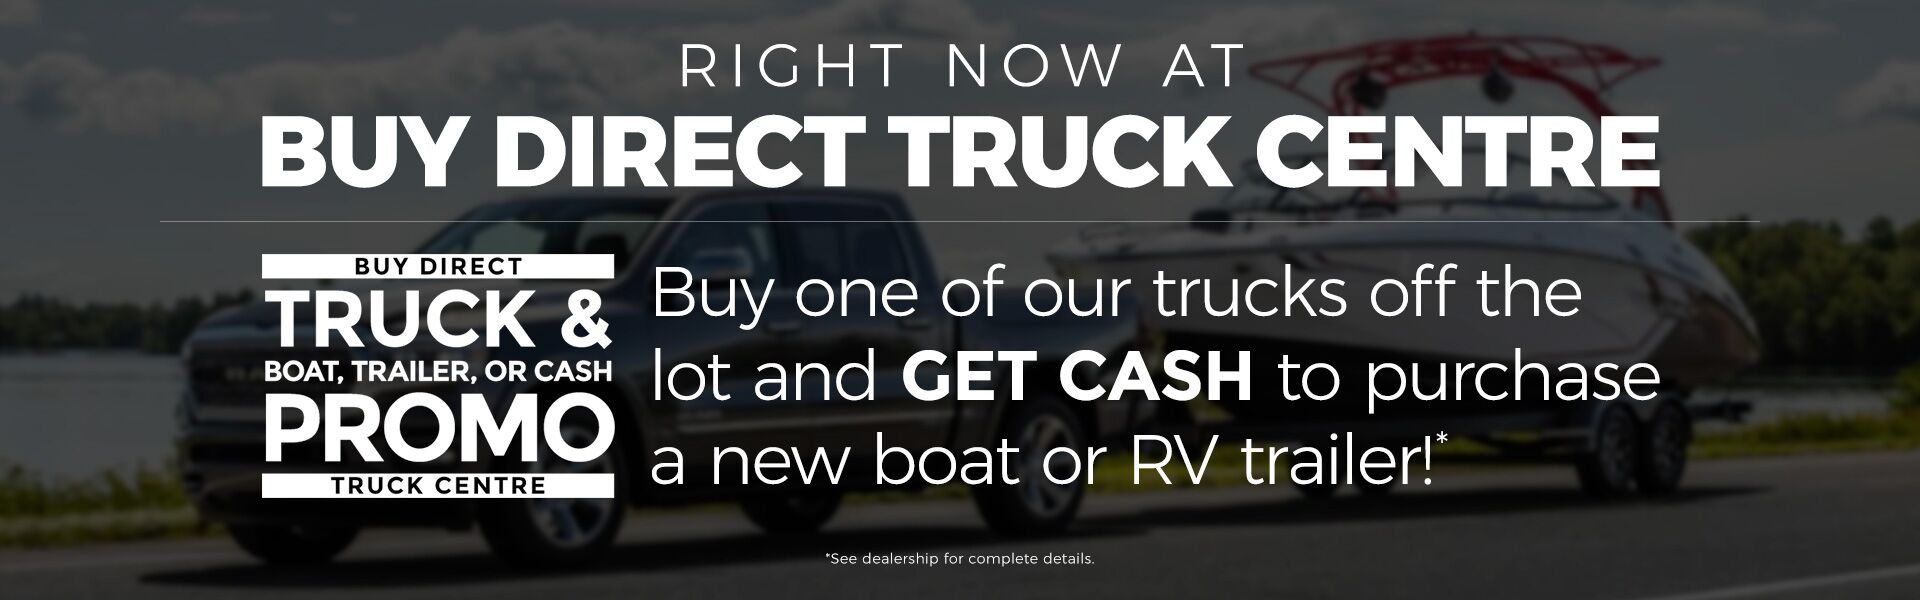 Truck & boat, trailer, or cash promo